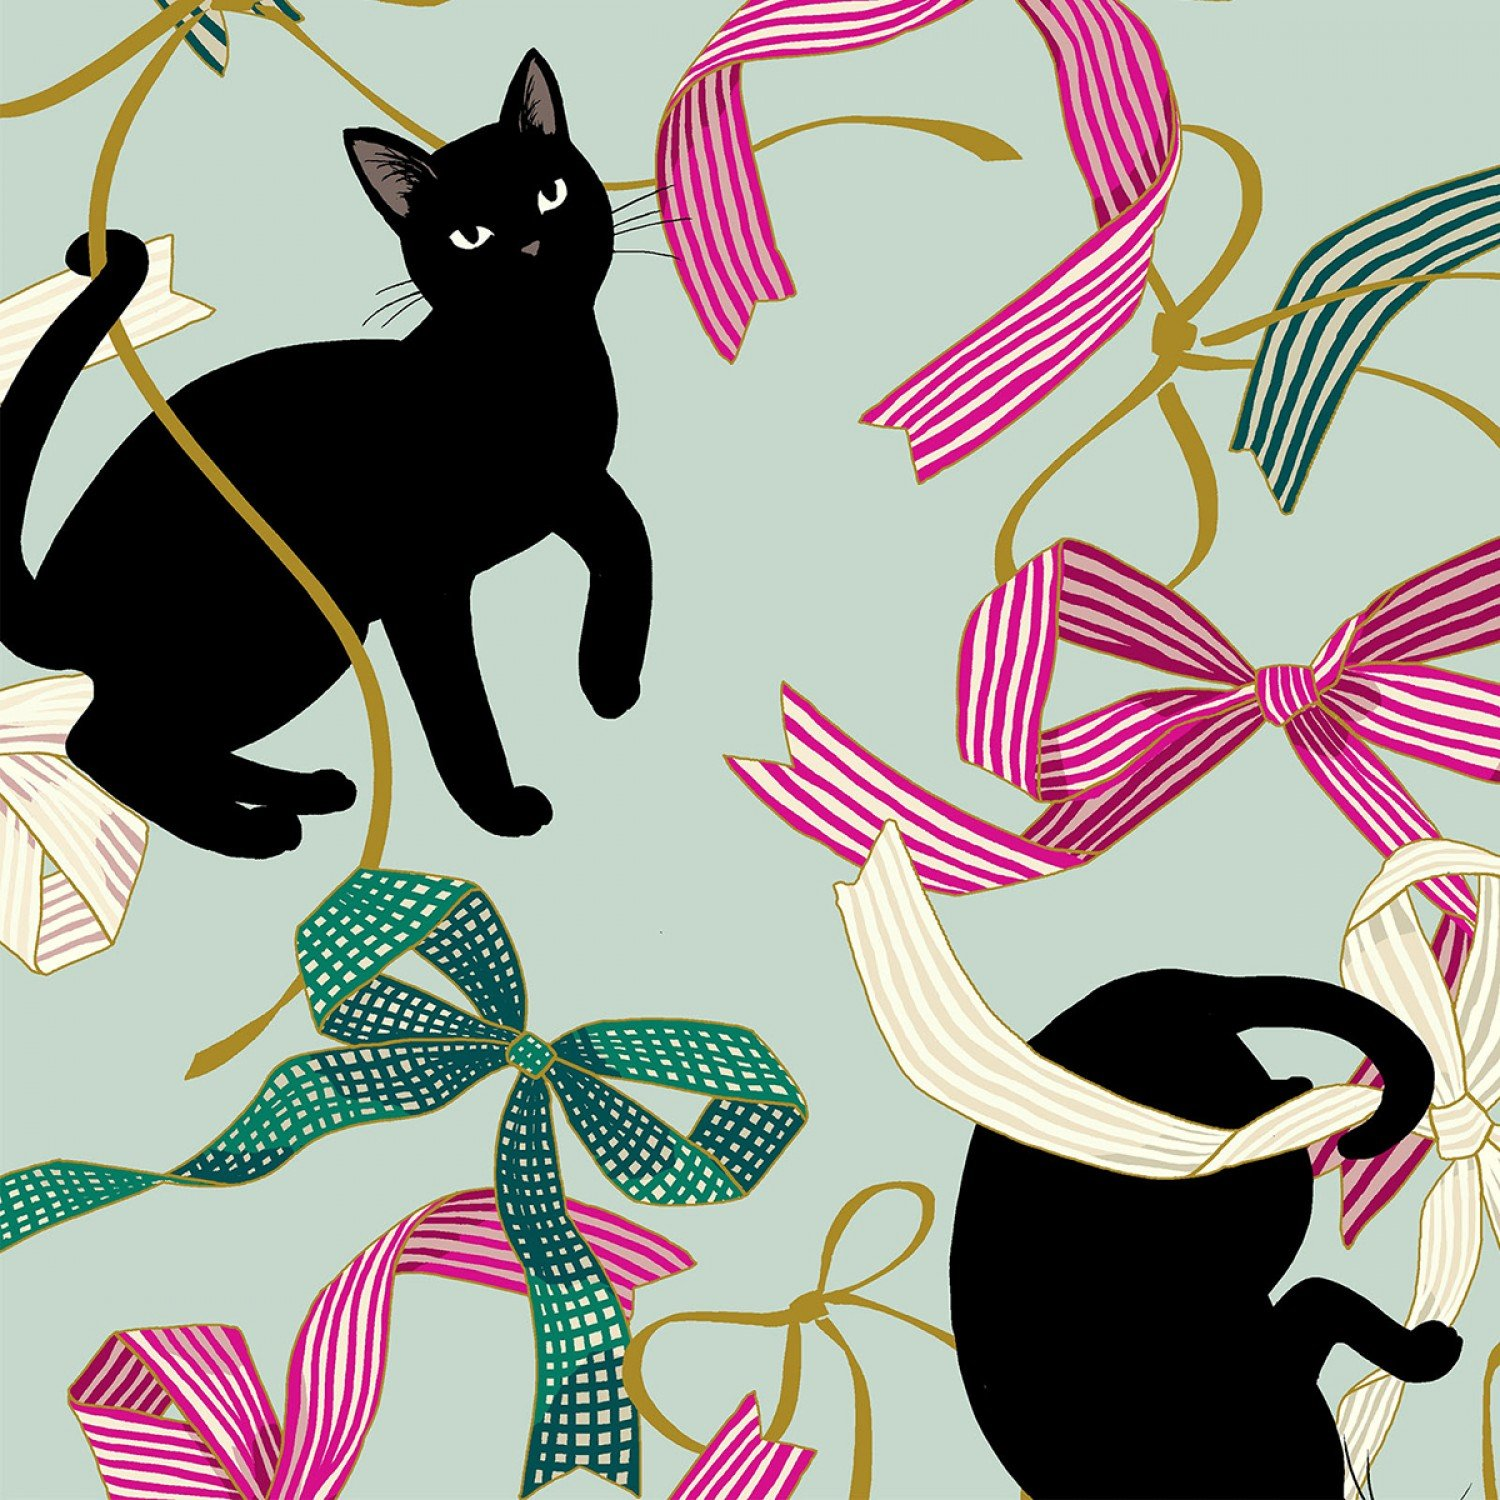 *Pink/Green Ribbon with Black Cat - HR3270-11B